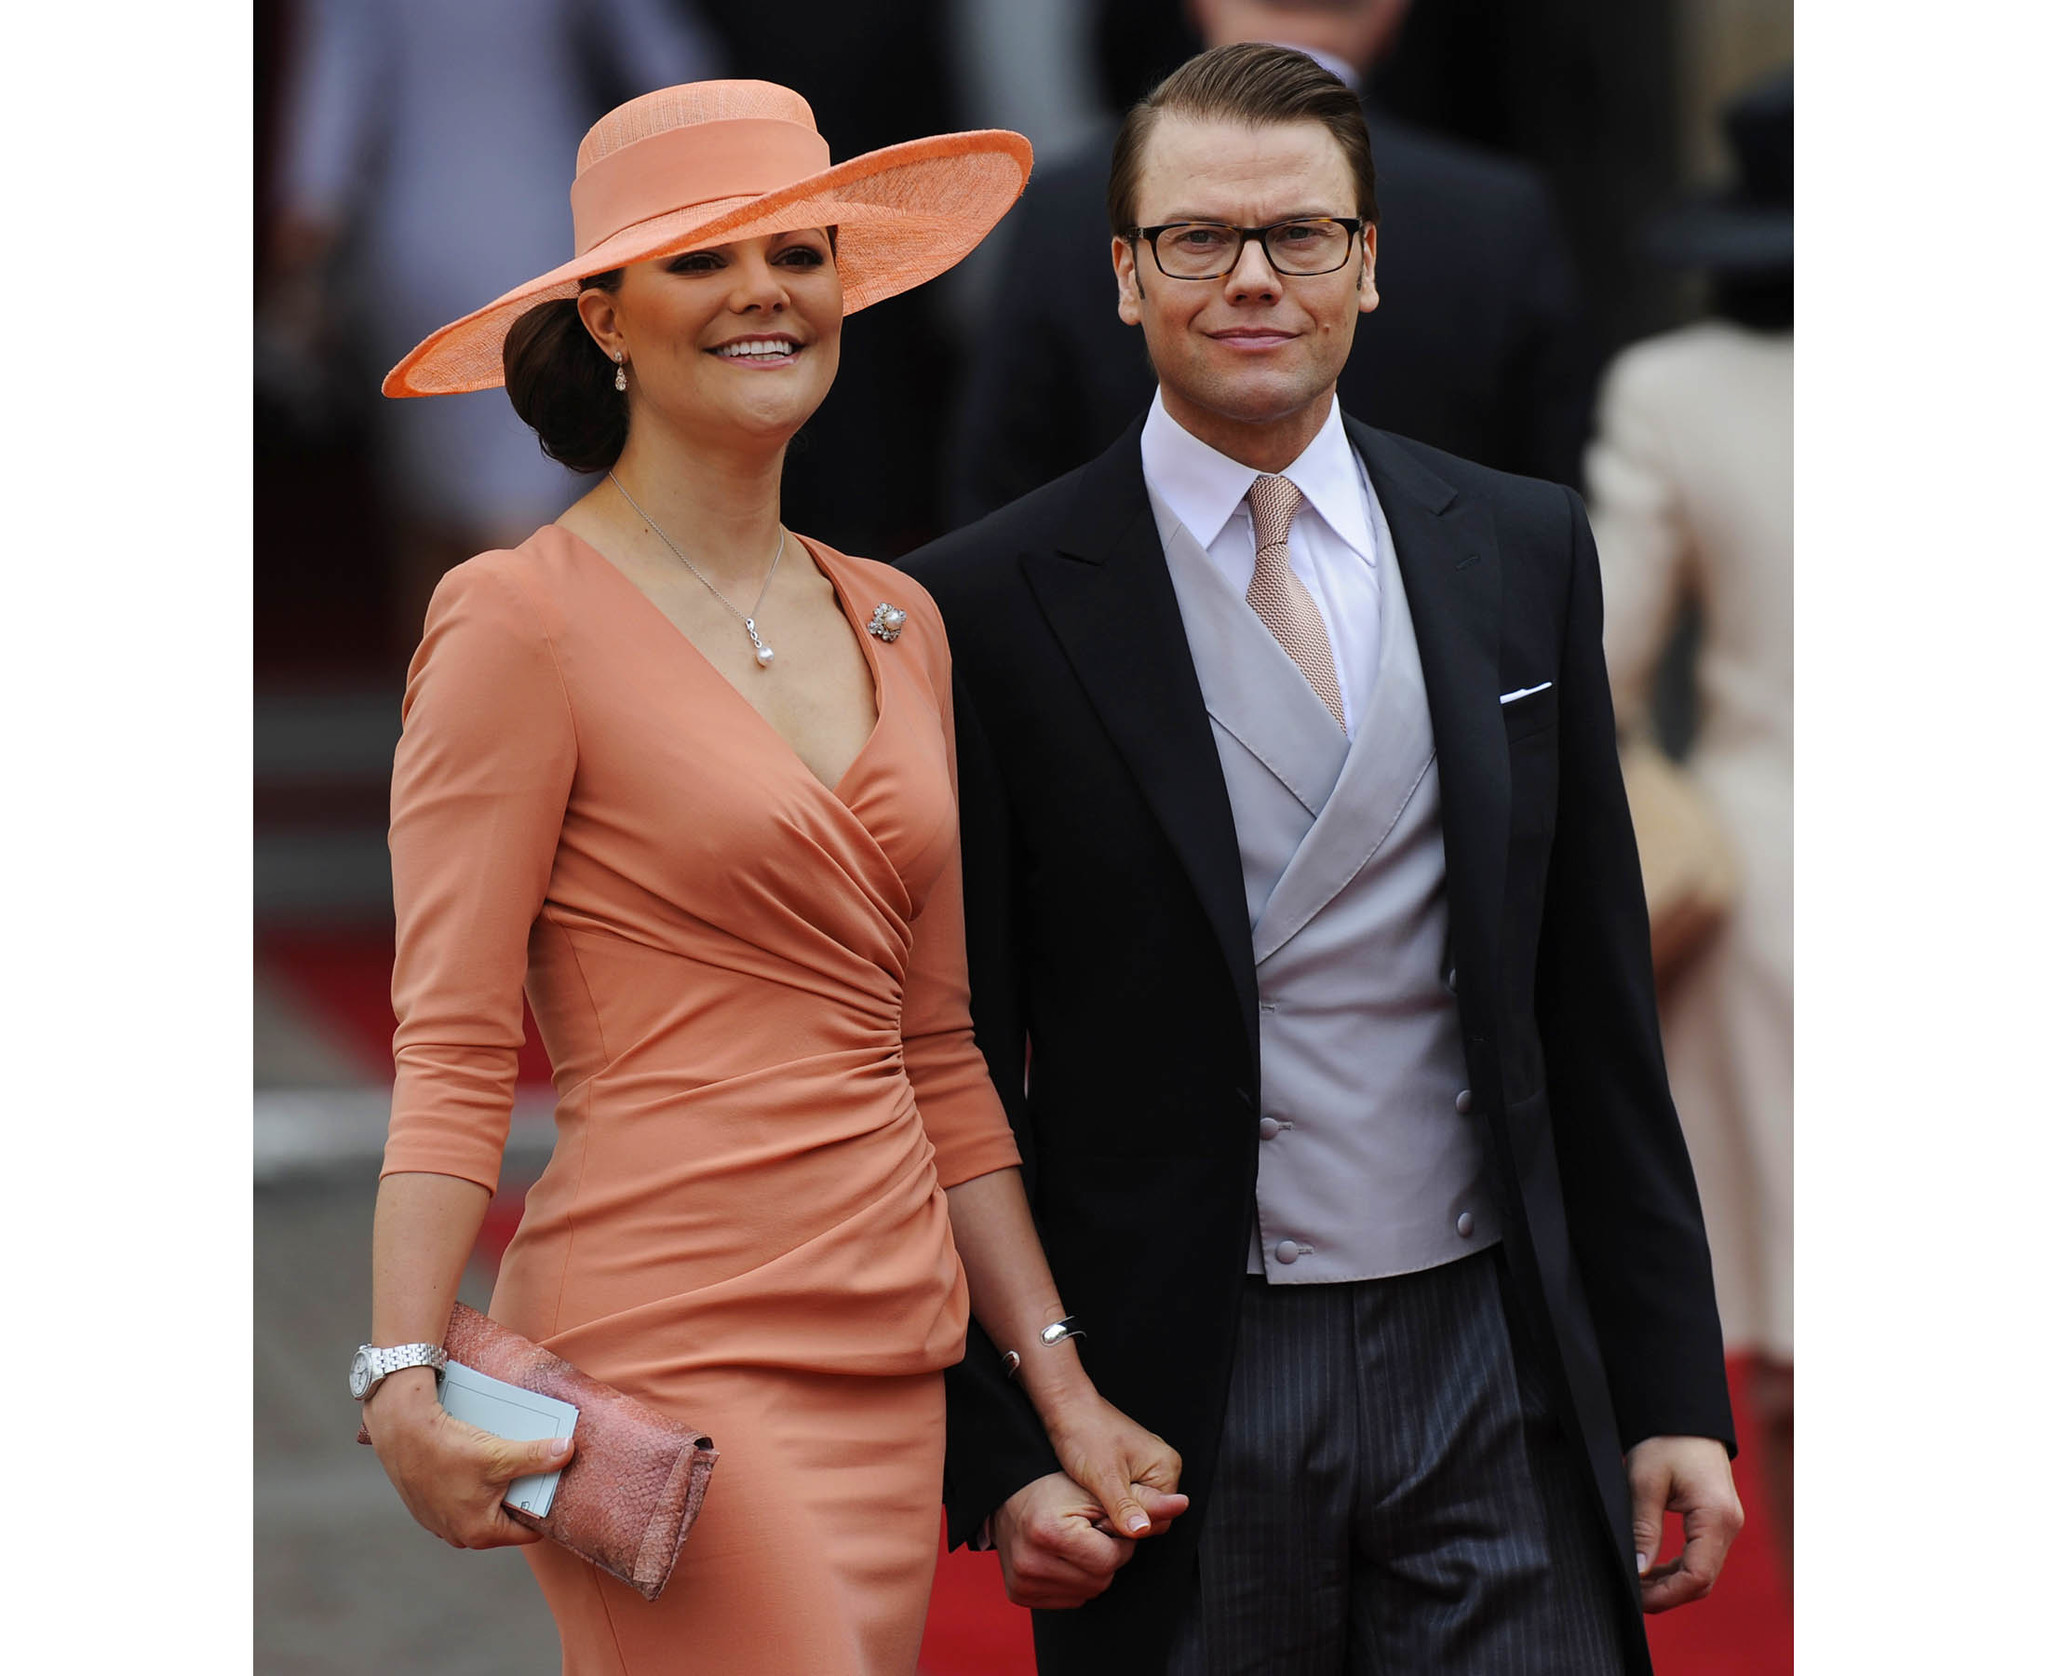 Sweden's Crown Princess Victoria and Prince Daniel